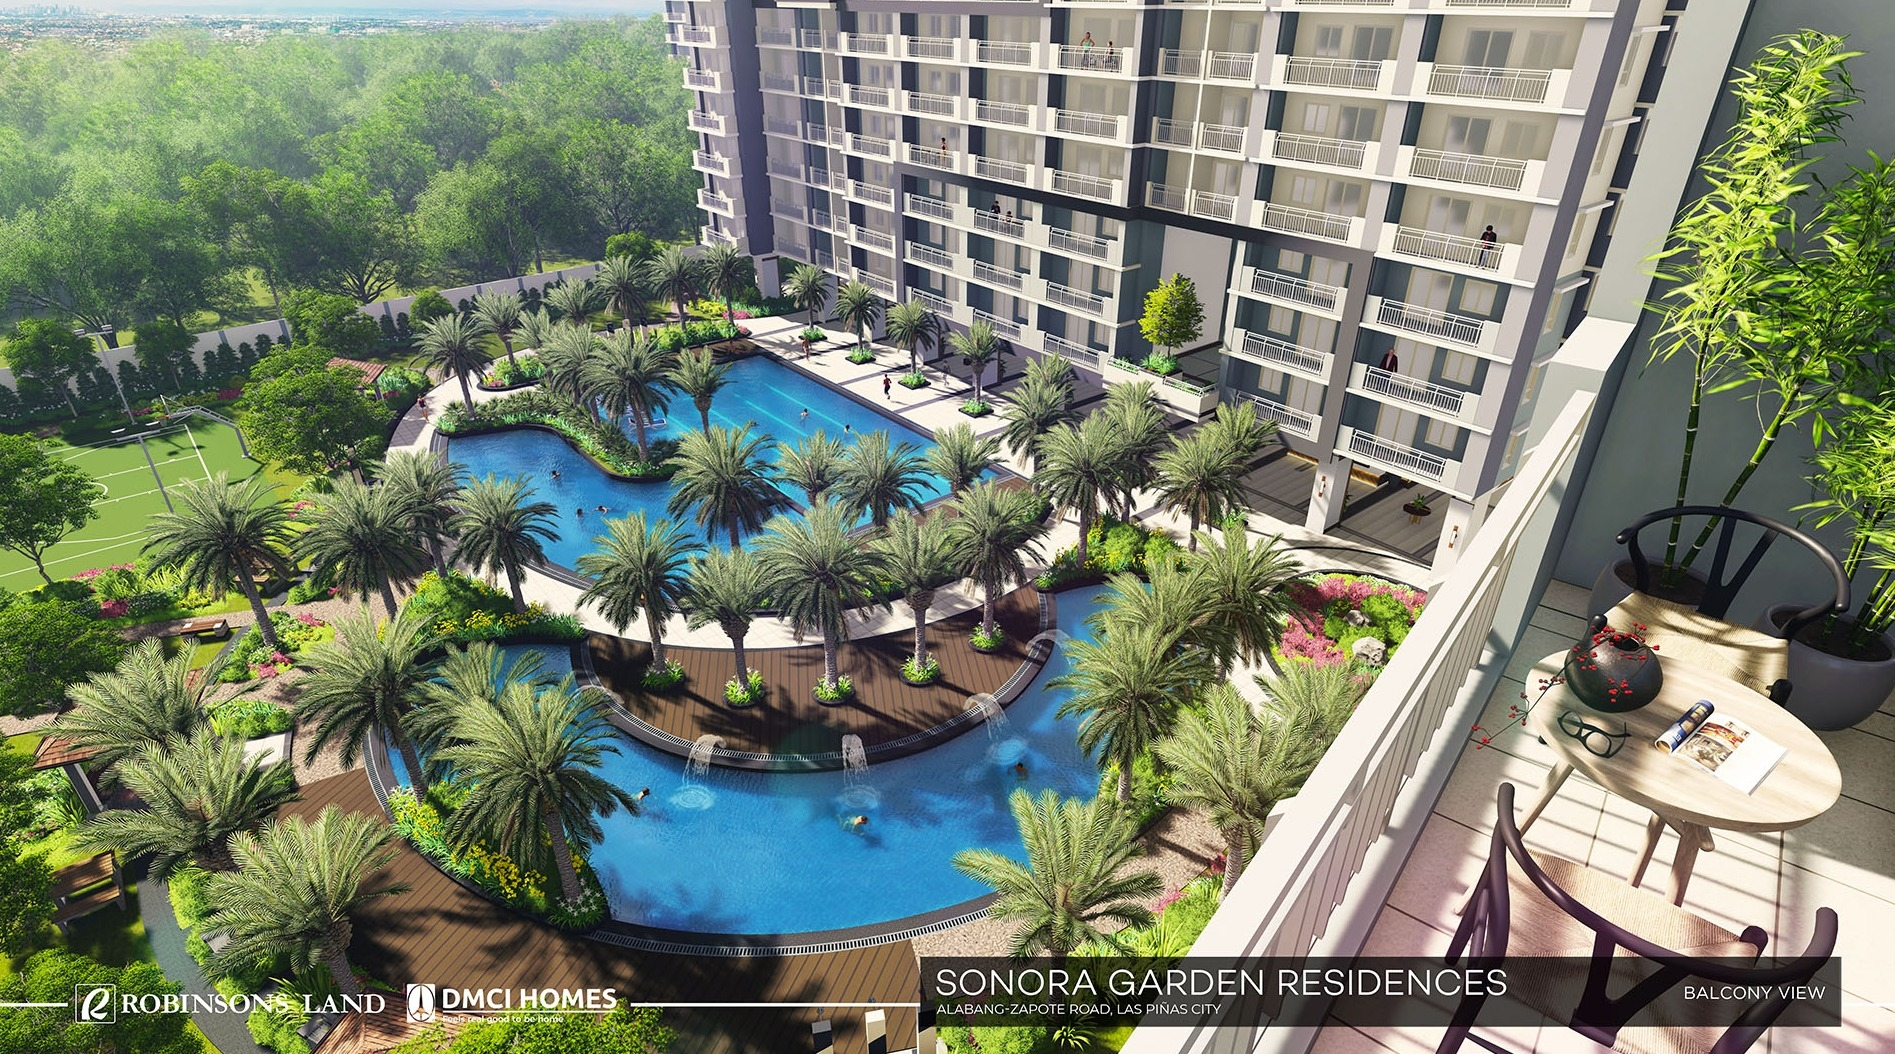 Sonora Garden Residences - Condo For Sale in Las Piñas